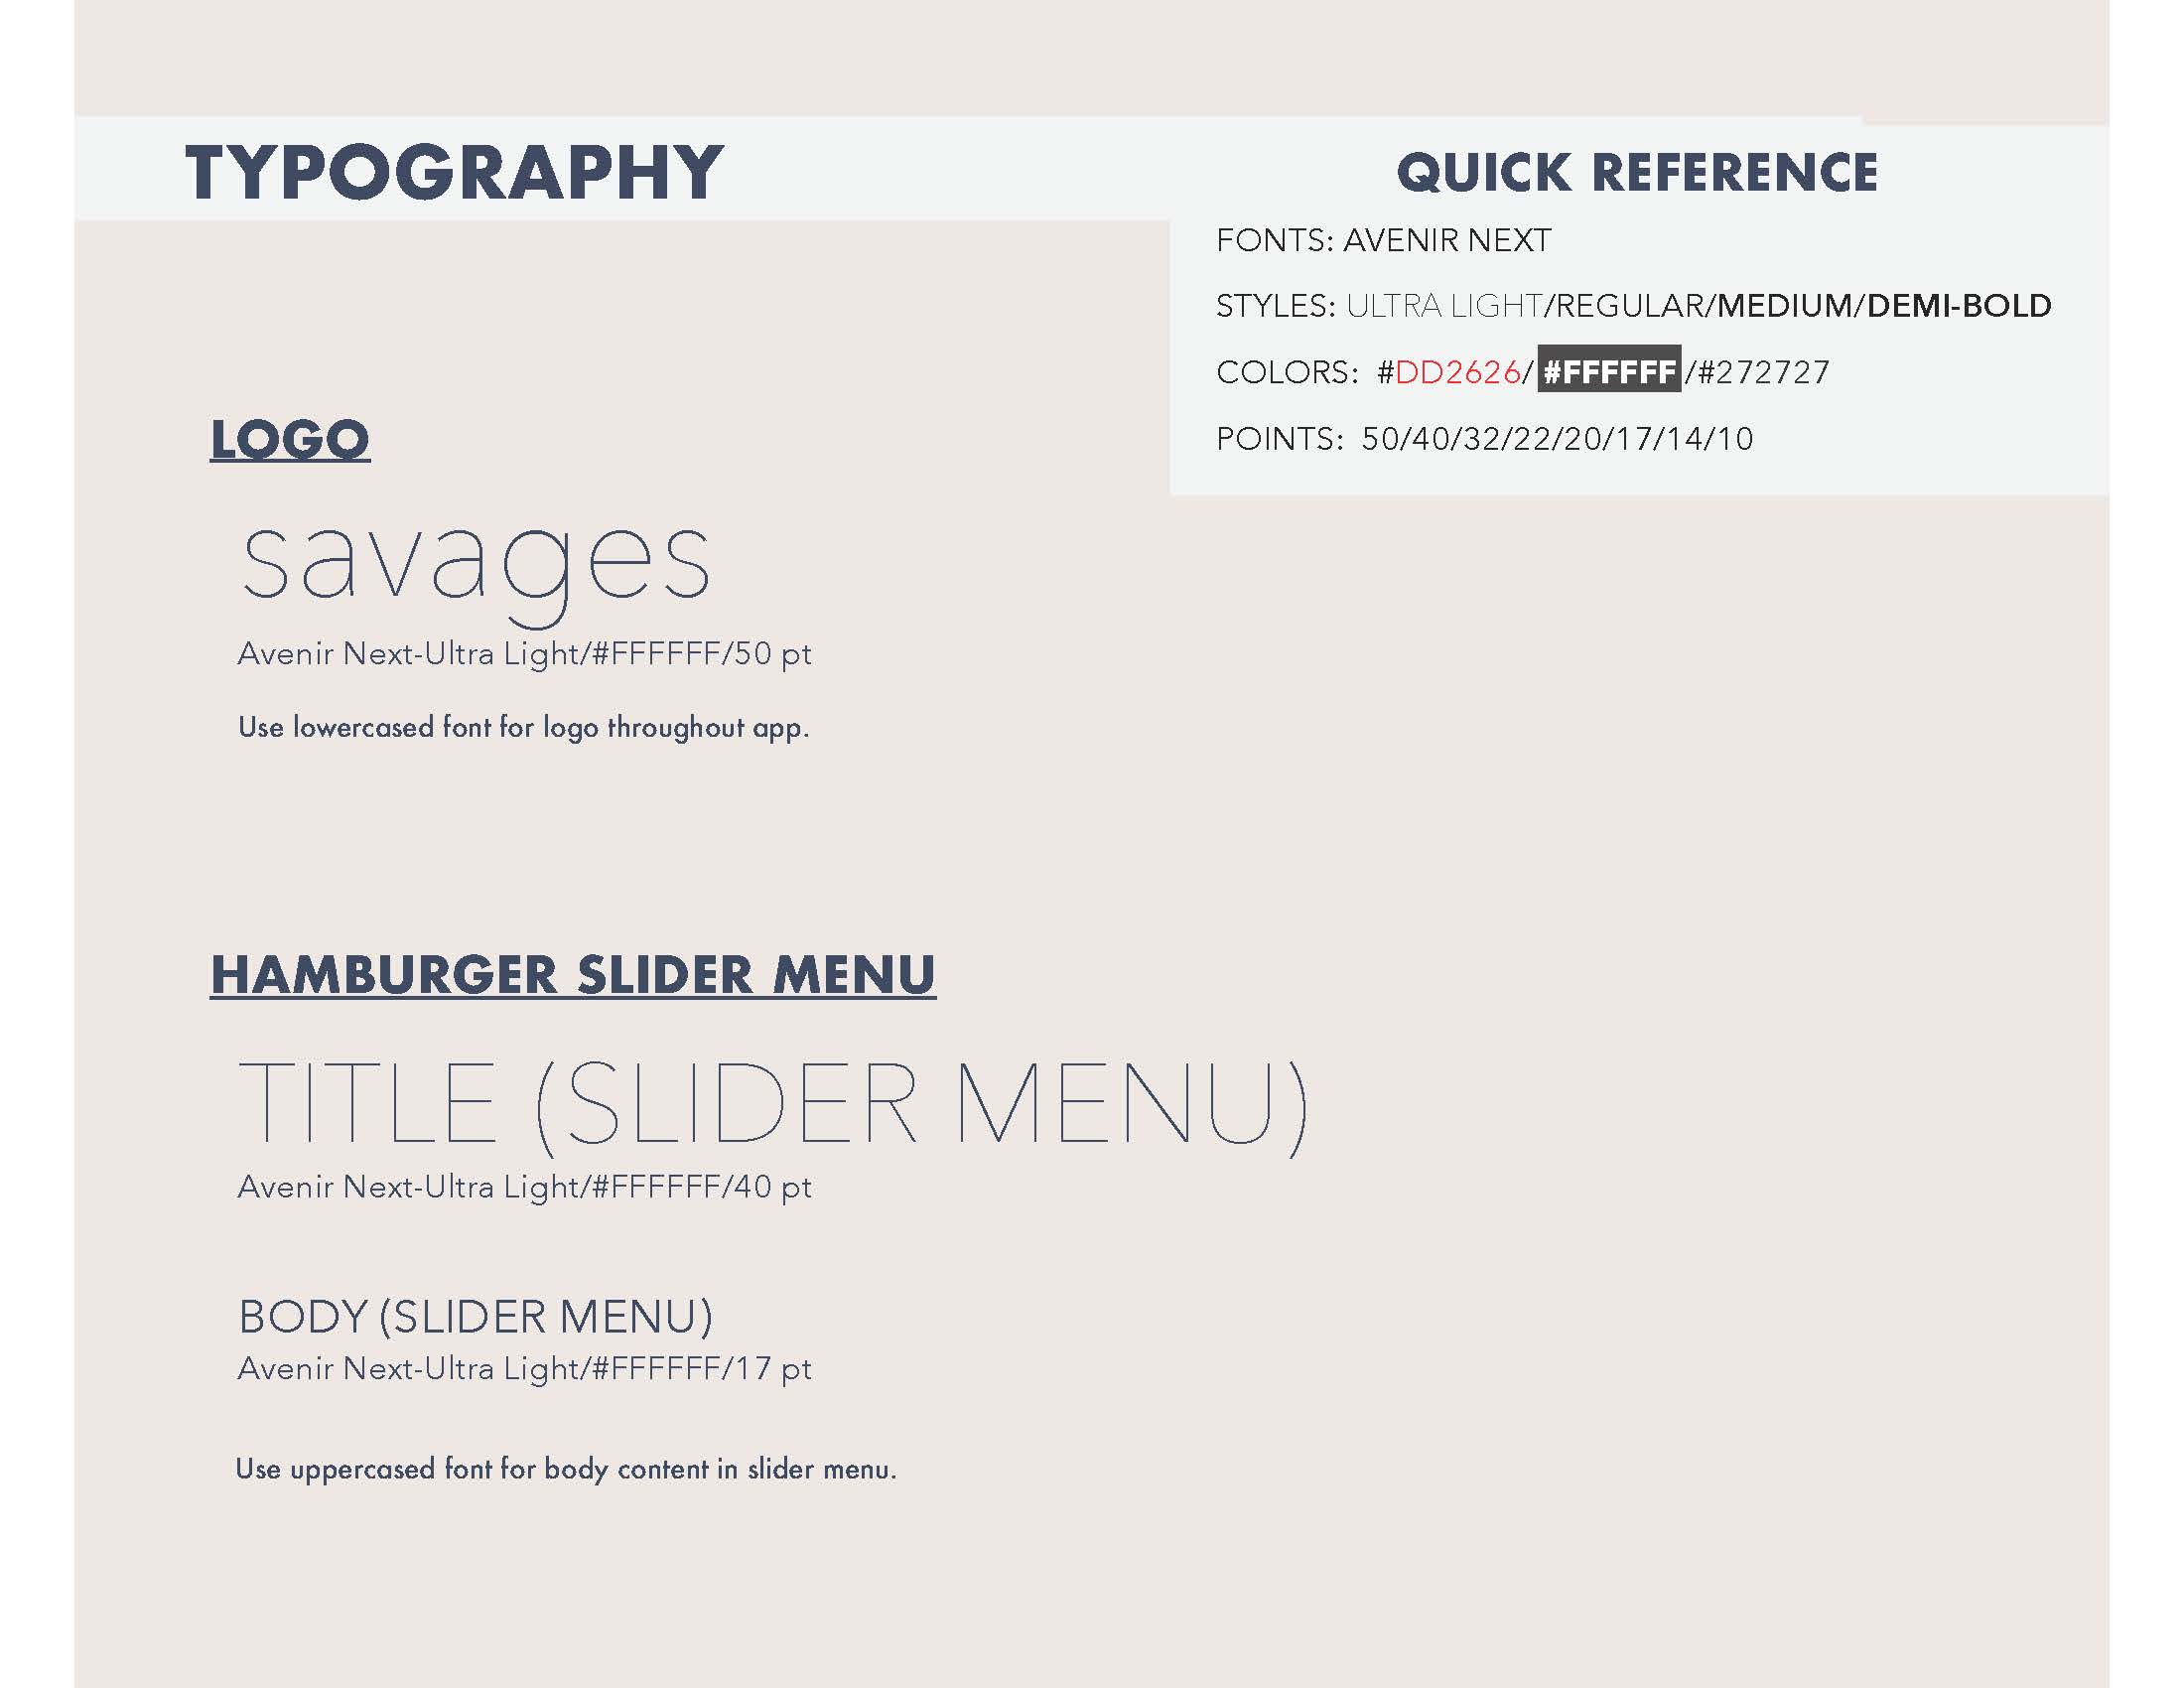 Style guide for Savages mobile scavenger hunt game application.